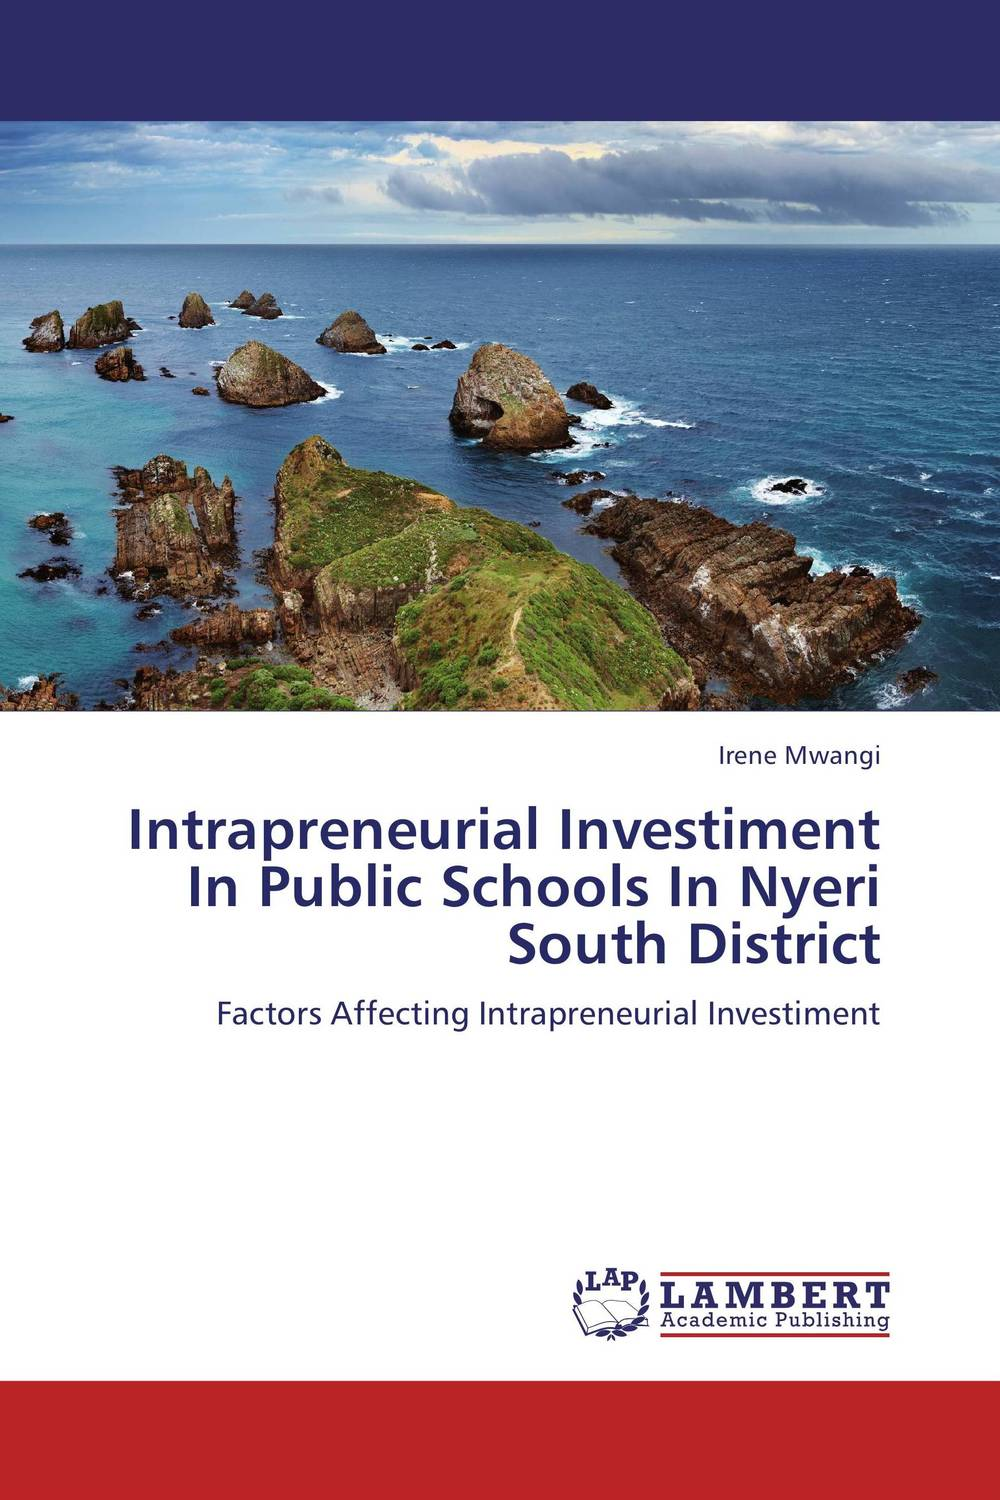 Intrapreneurial Investiment In Public Schools In Nyeri South District